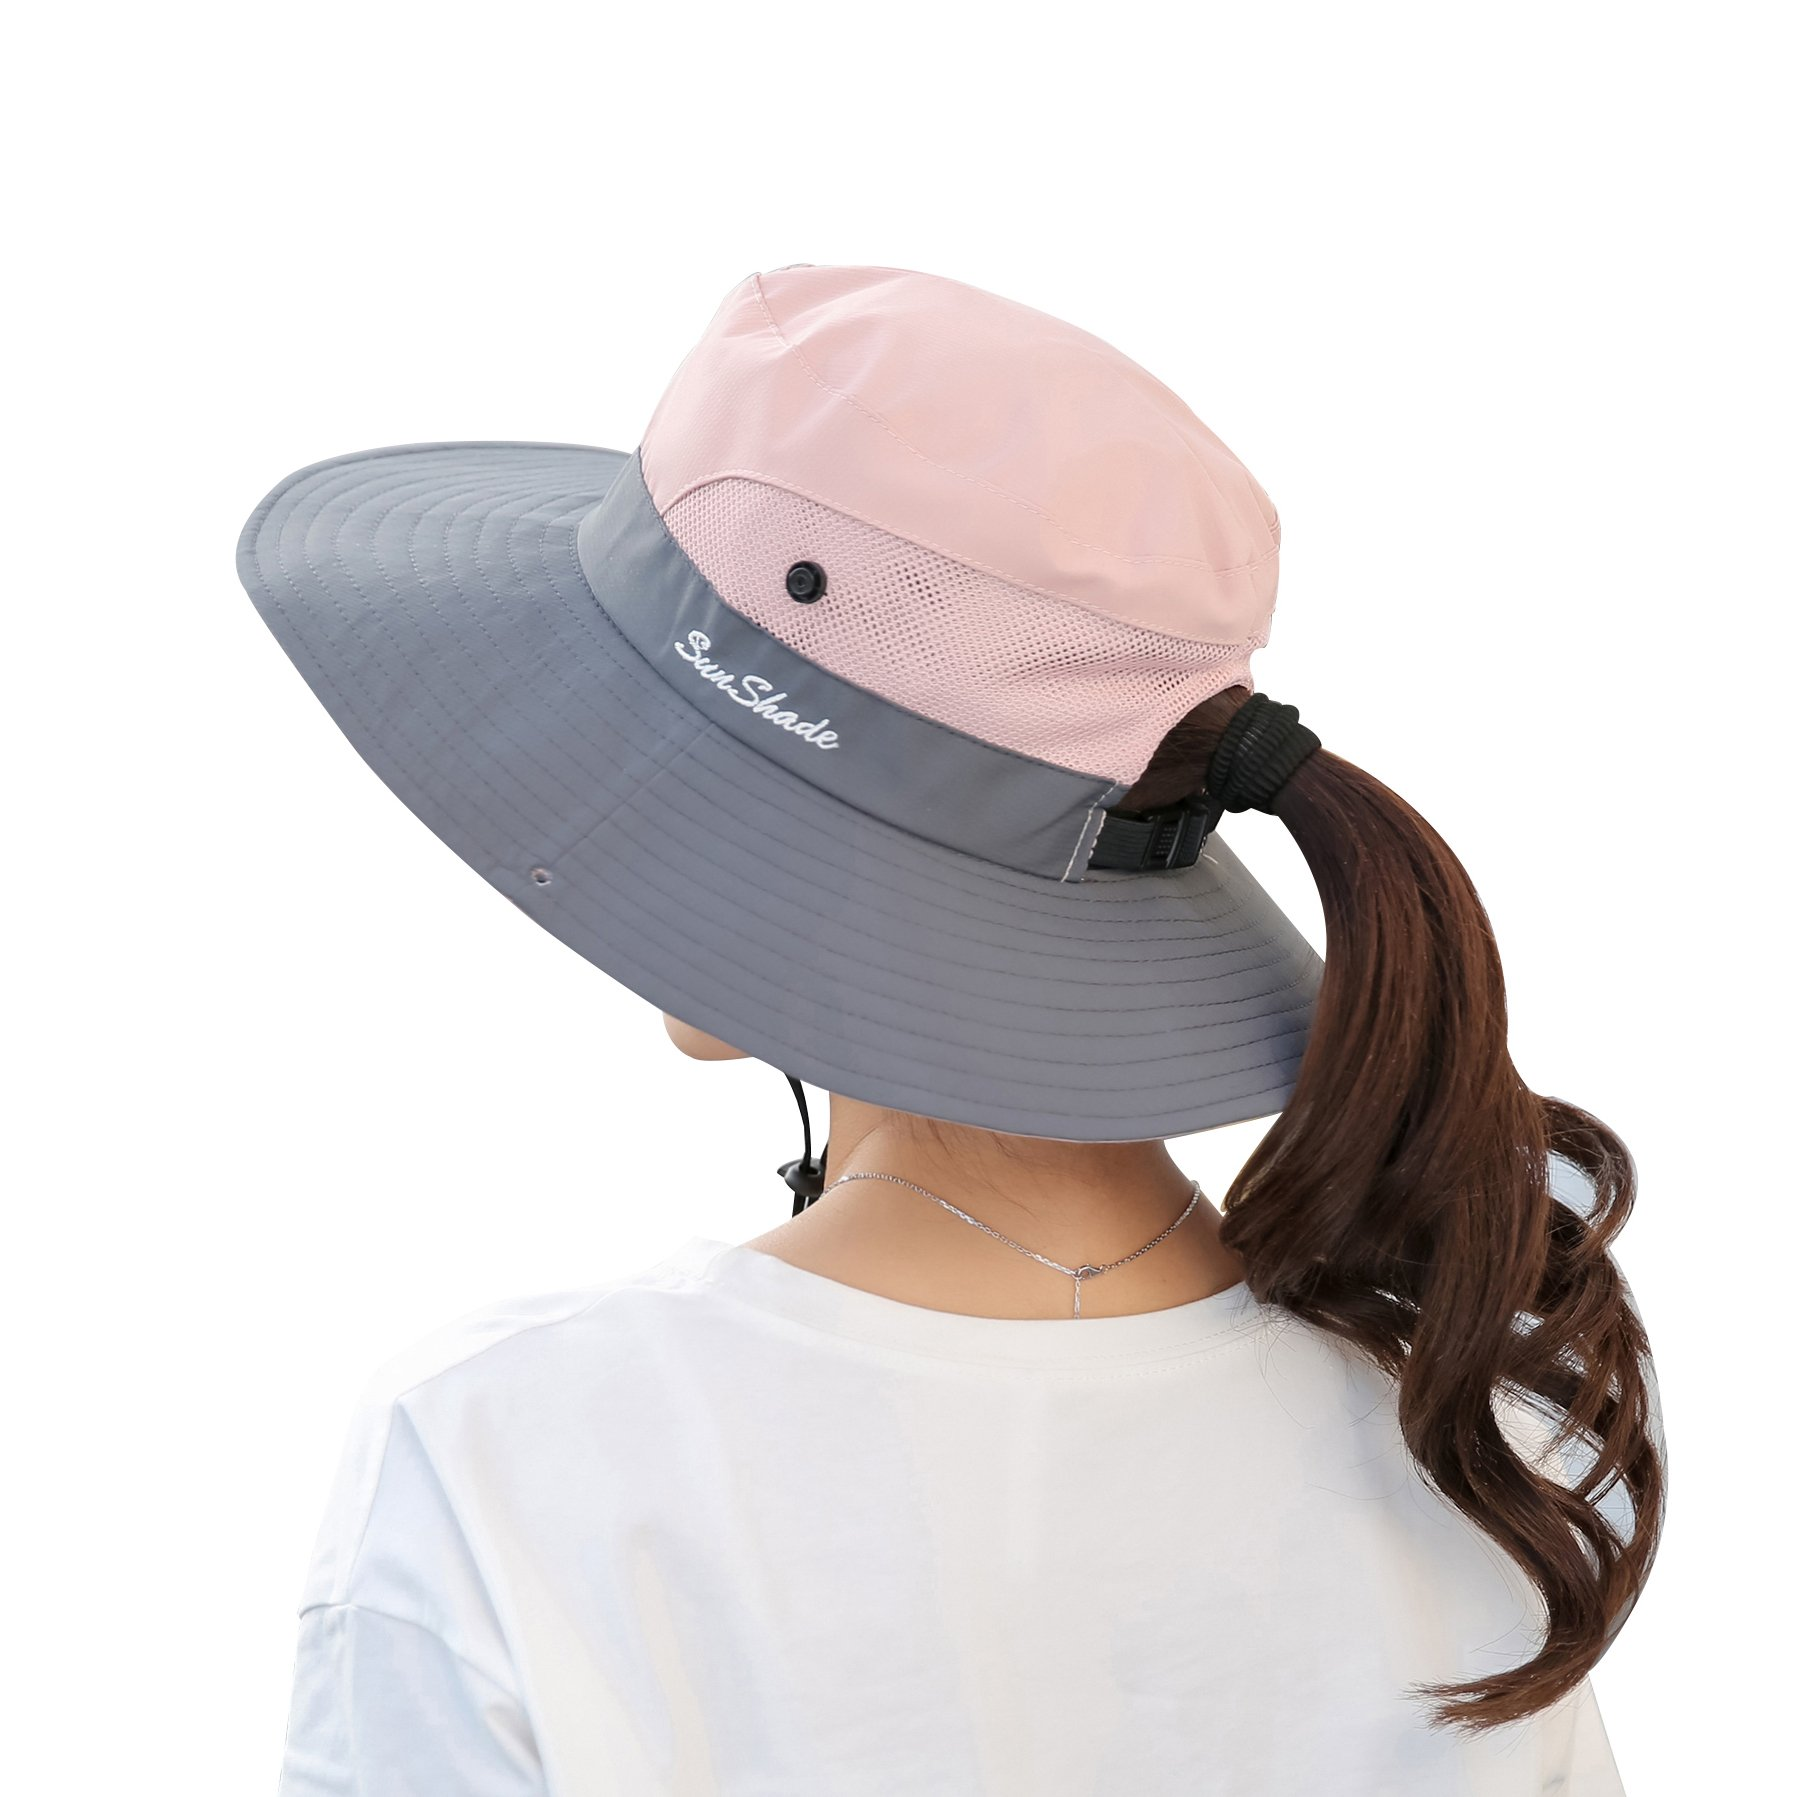 575f8aa253532 Women s Summer Sun UV Protection Hat Foldable Wide Brim Boonie Hats for  Beach Safari Fishing product